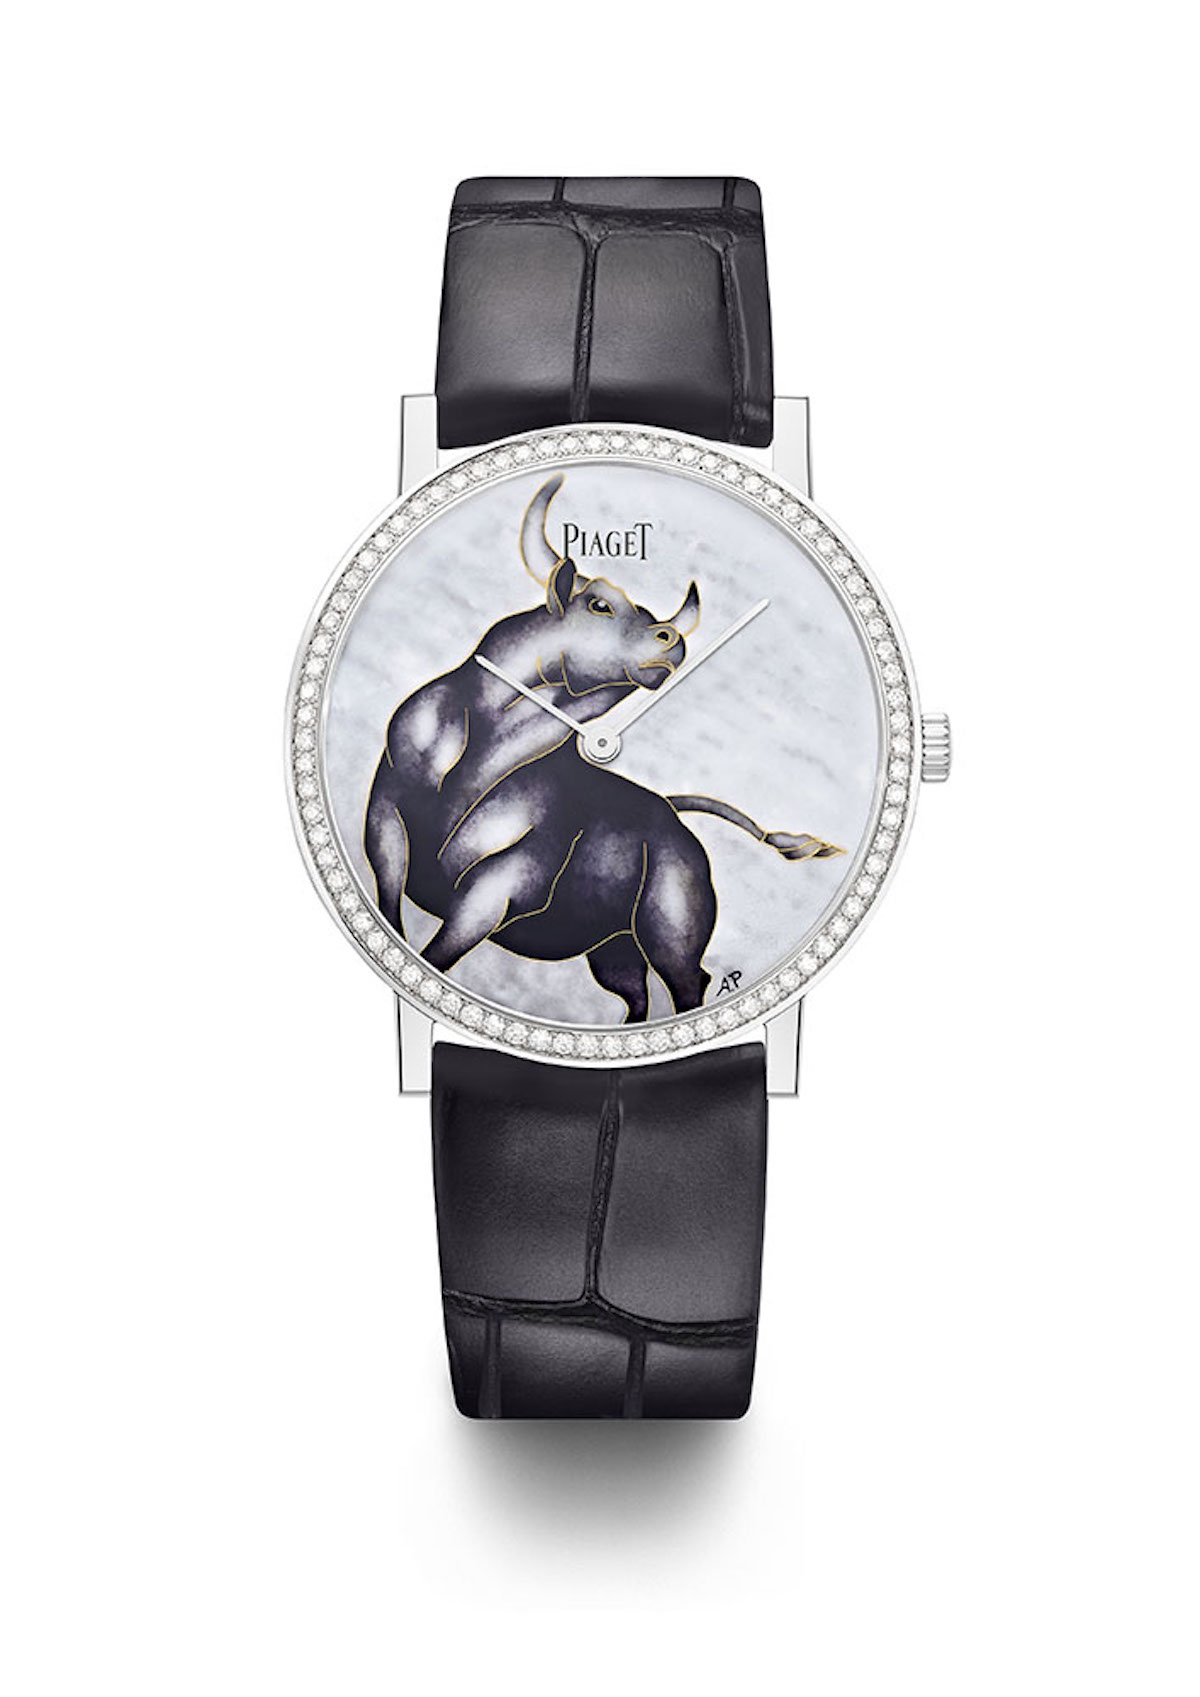 Piaget Altiplano Chinese New Year, Year of the Ox watch.